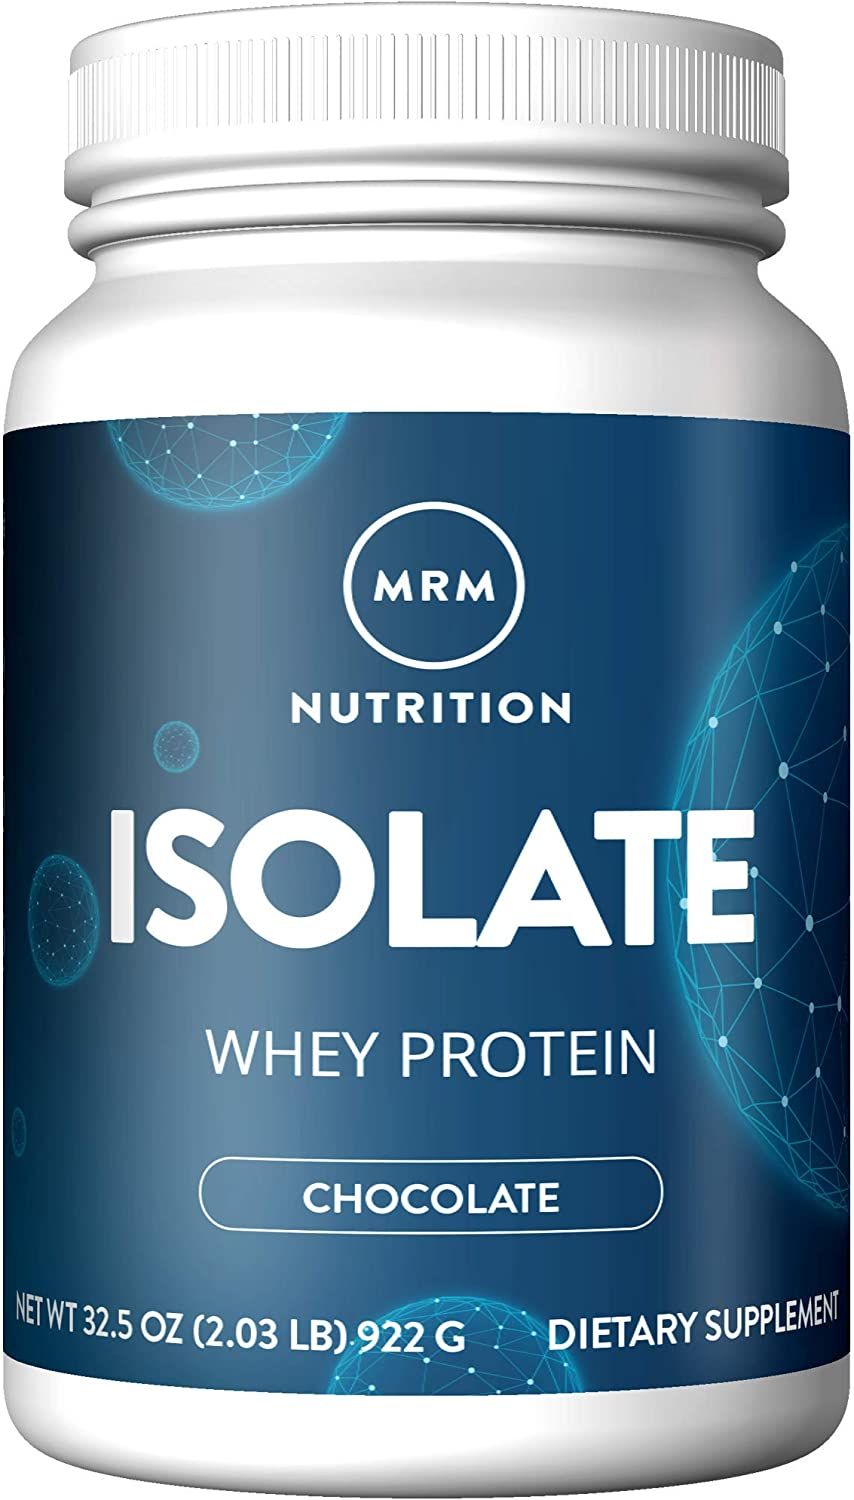 MRM 100% All Natural Isolate Whey Protein, Hormone and BSE free, Chocolate Malt, 2.03 lbs (32.5 oz)